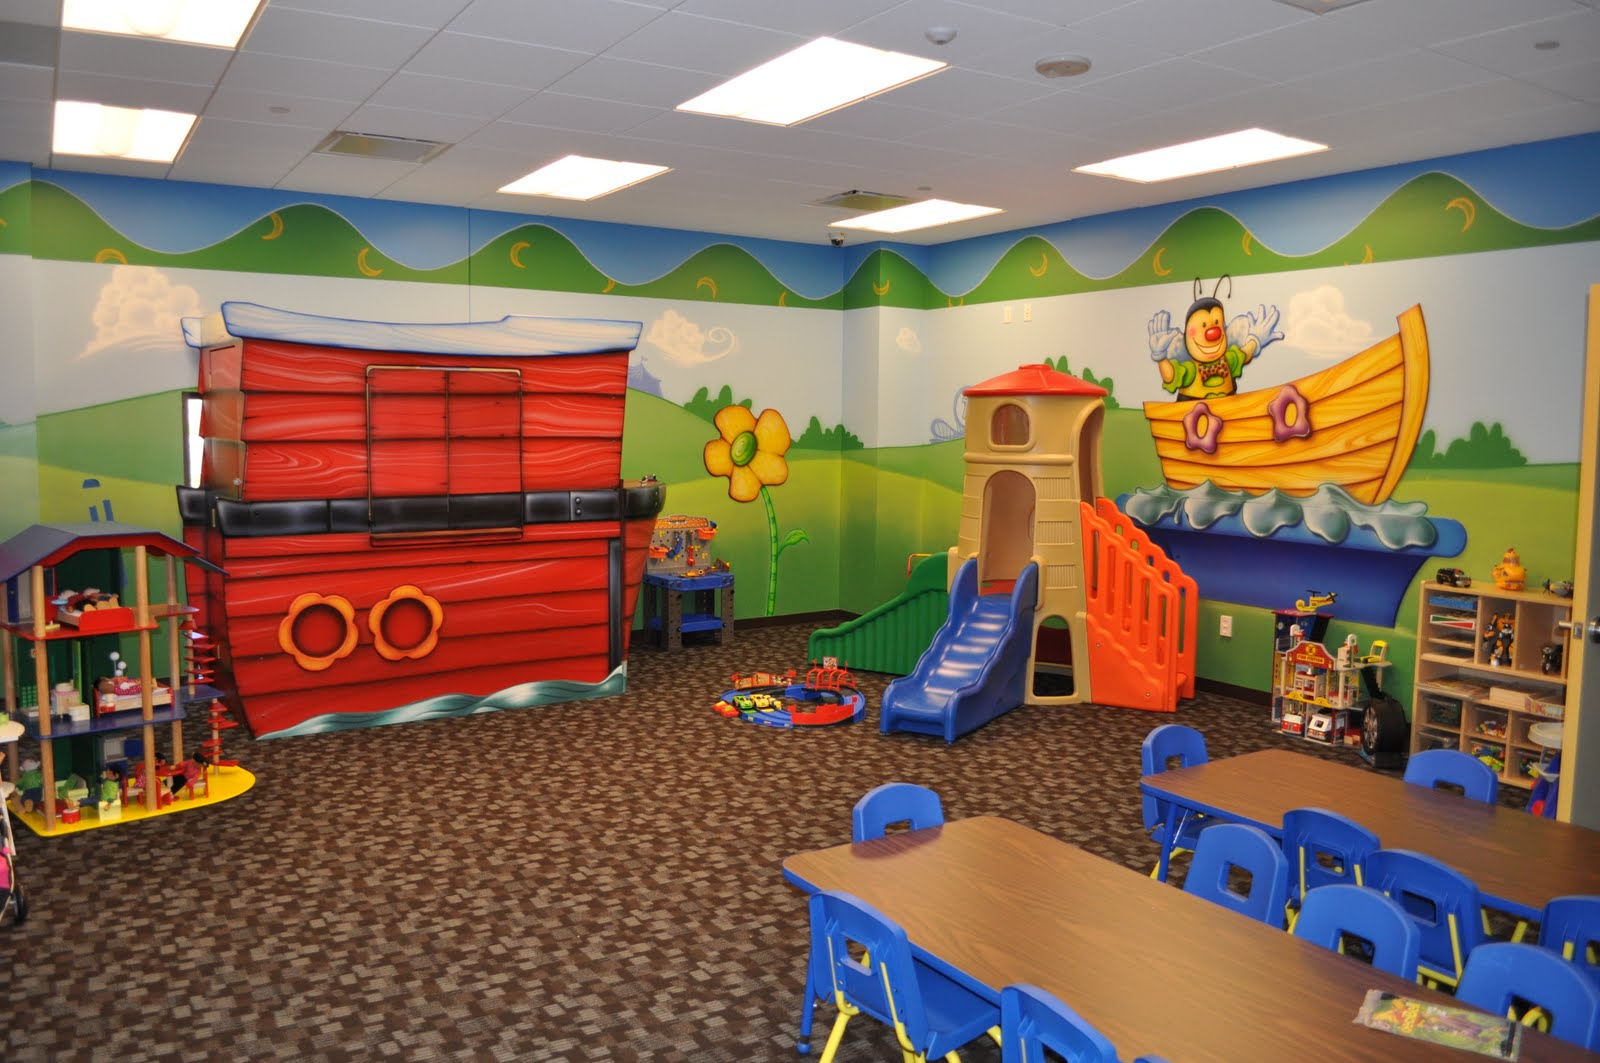 Decorating childrens church room joy studio design for Church mural ideas